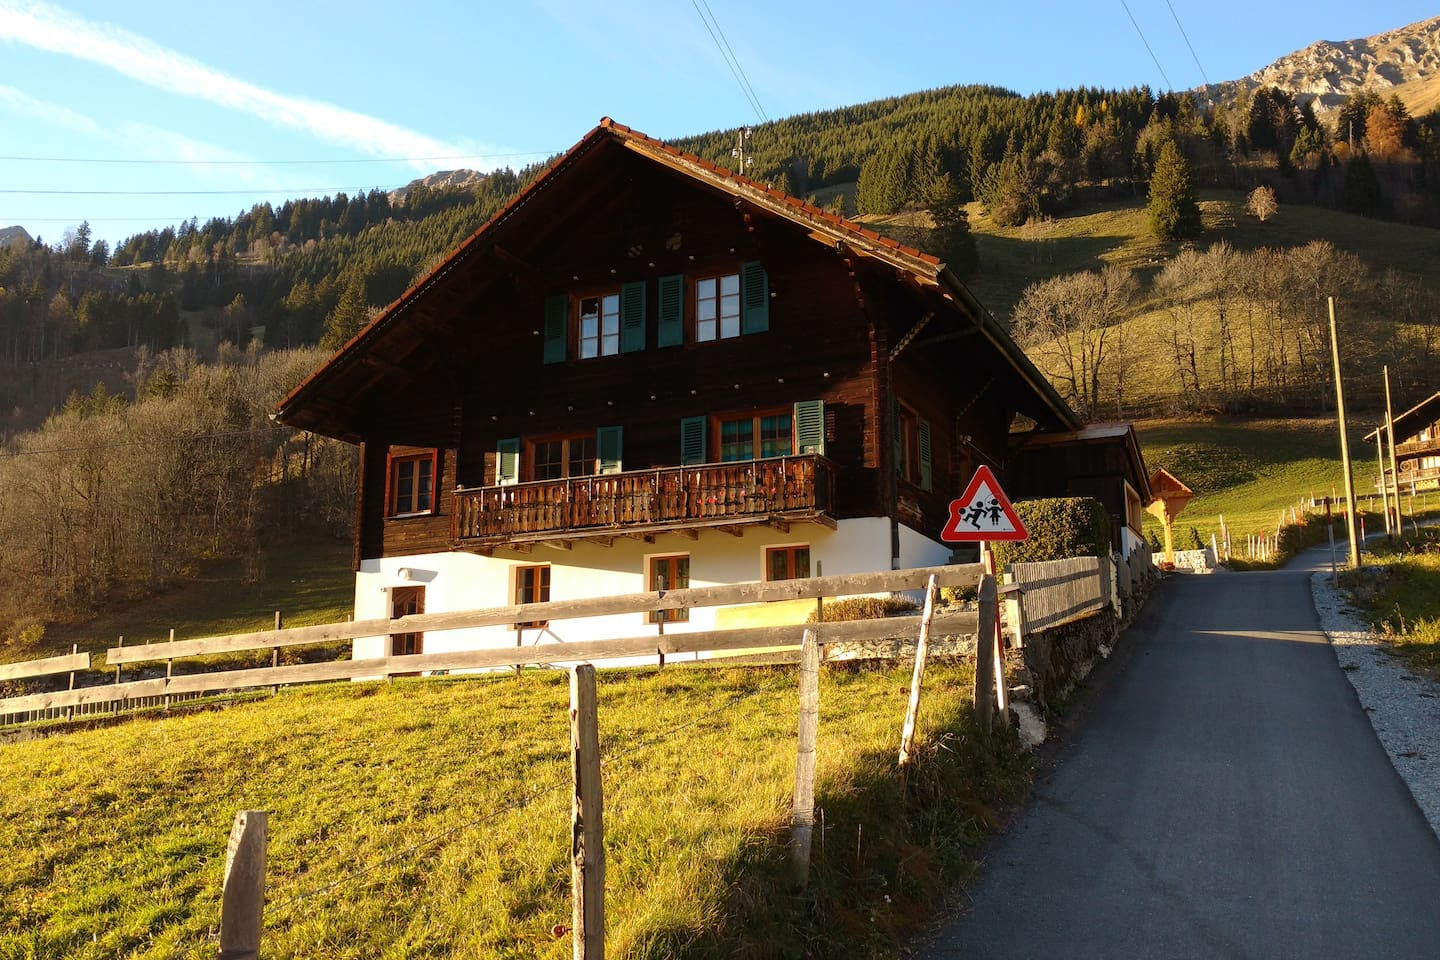 South-facing side of the chalet